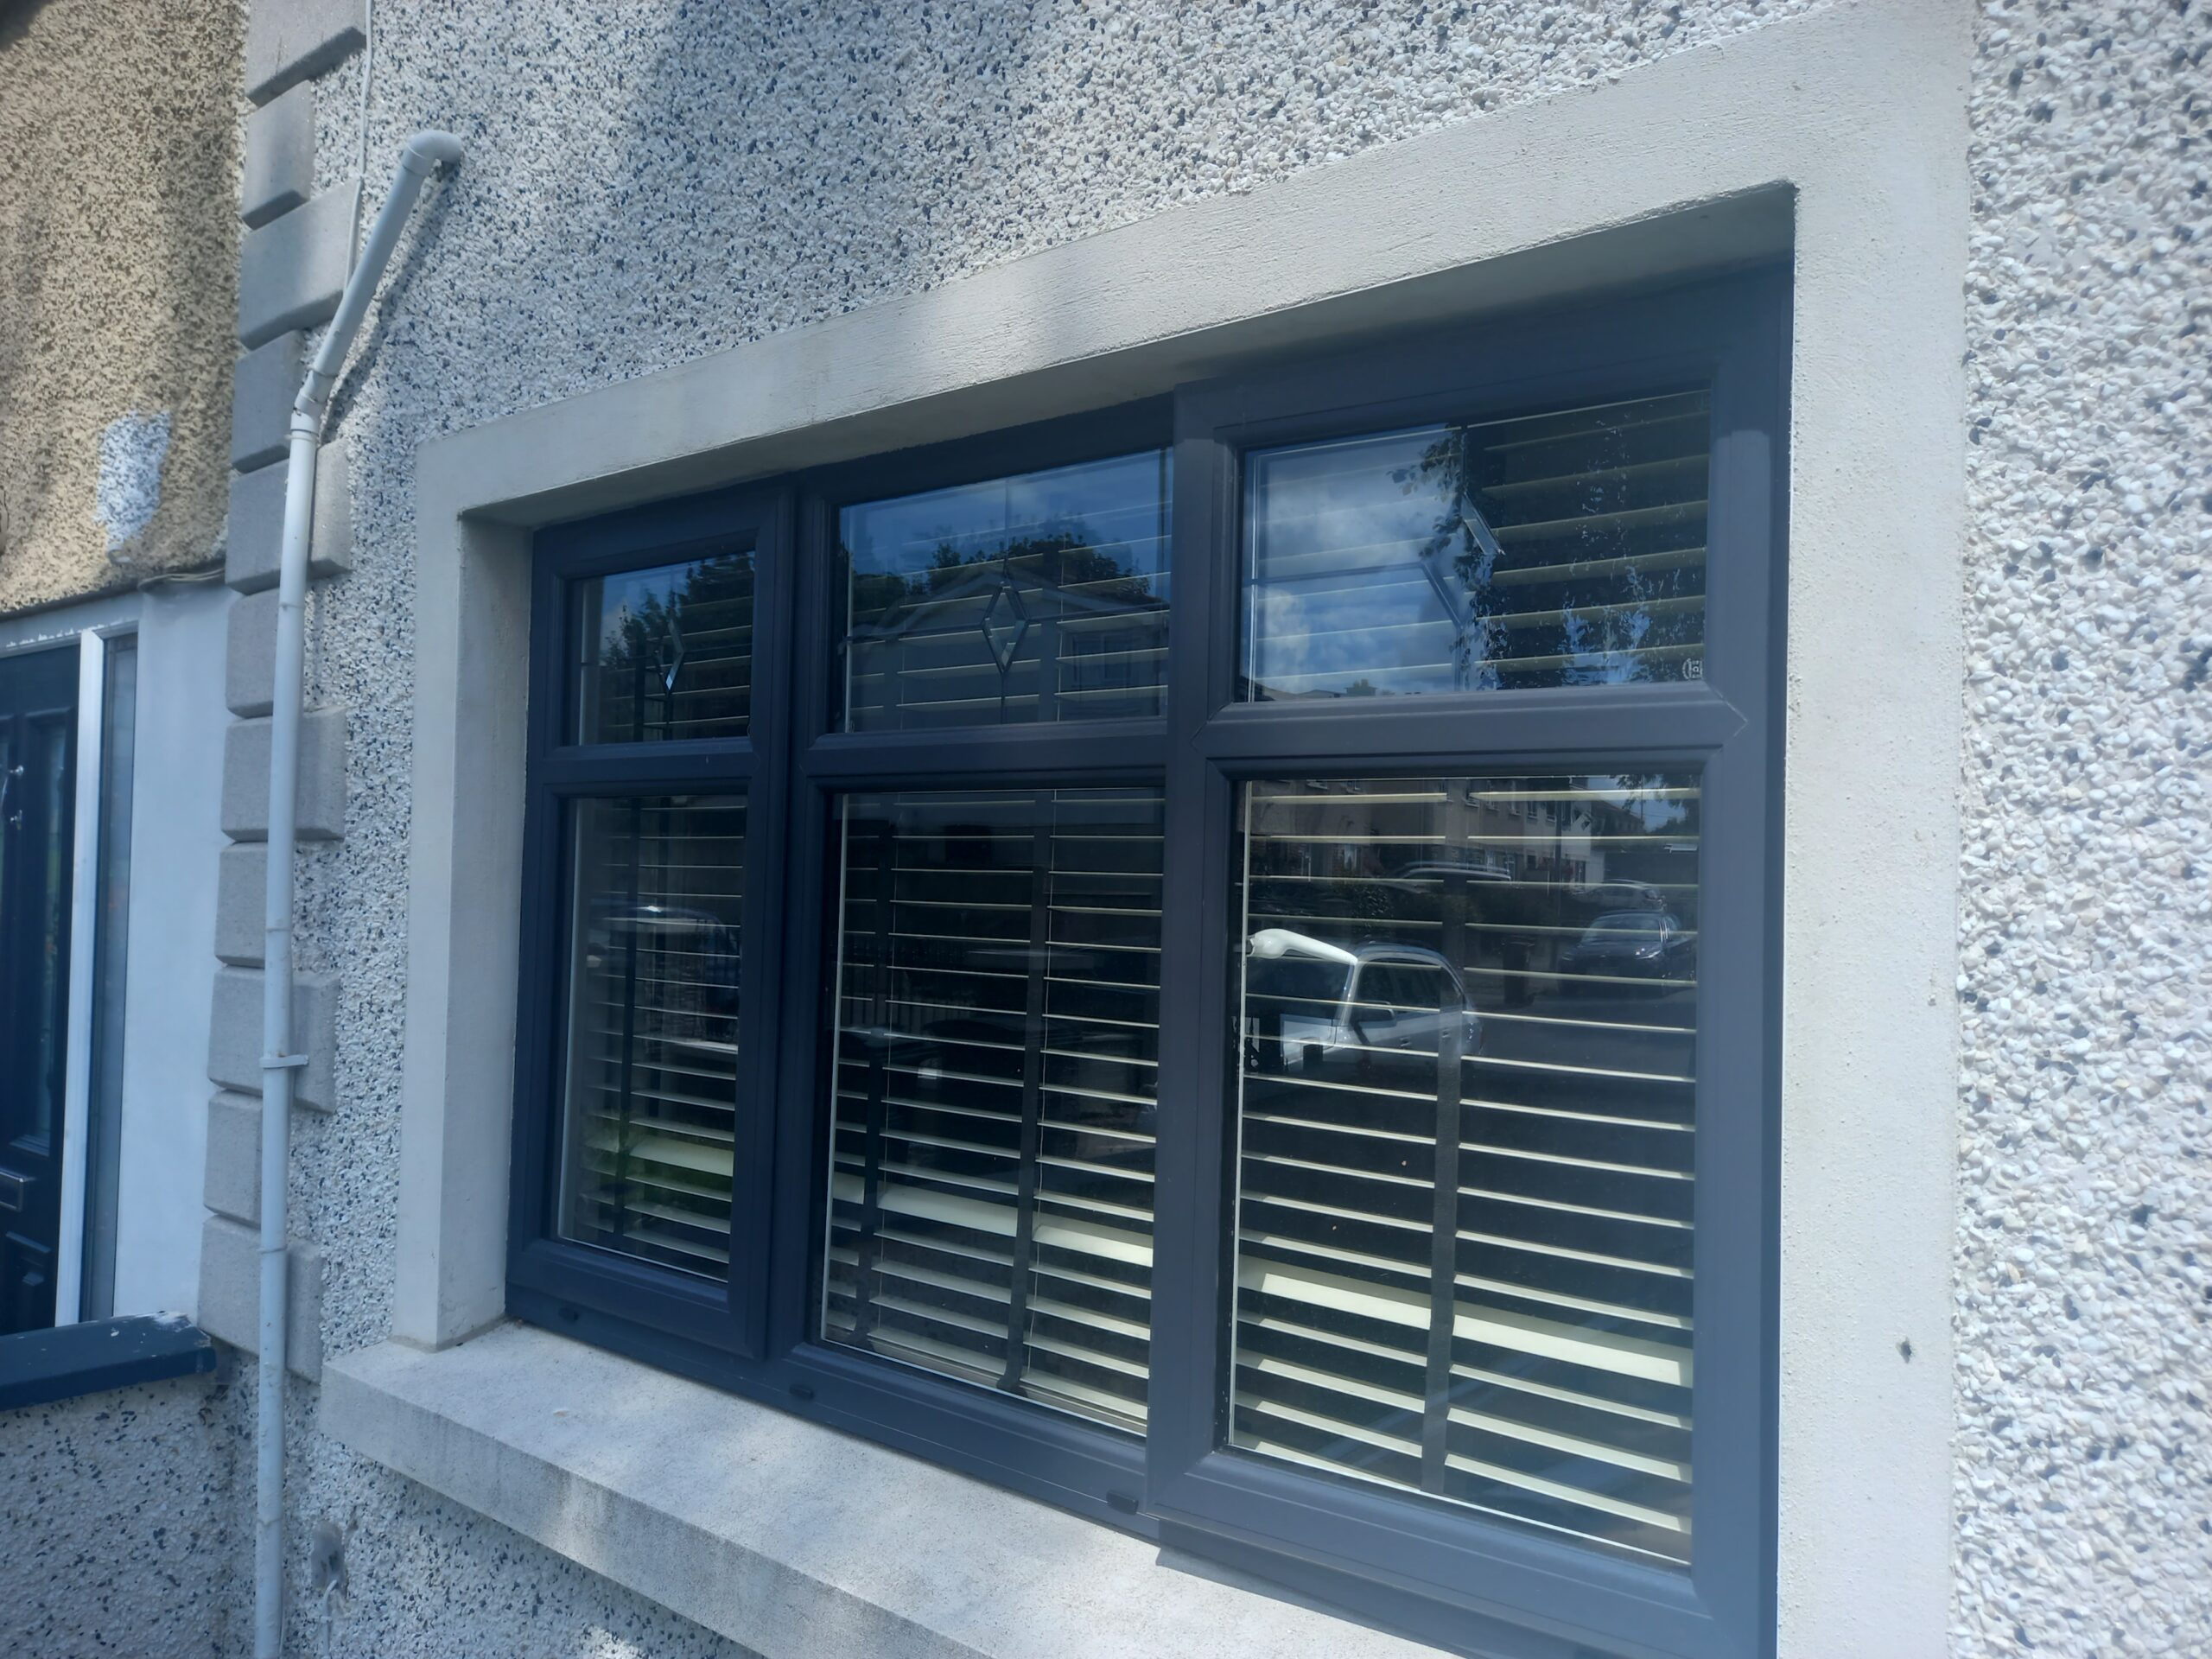 Windows in the colour Anthracite Grey